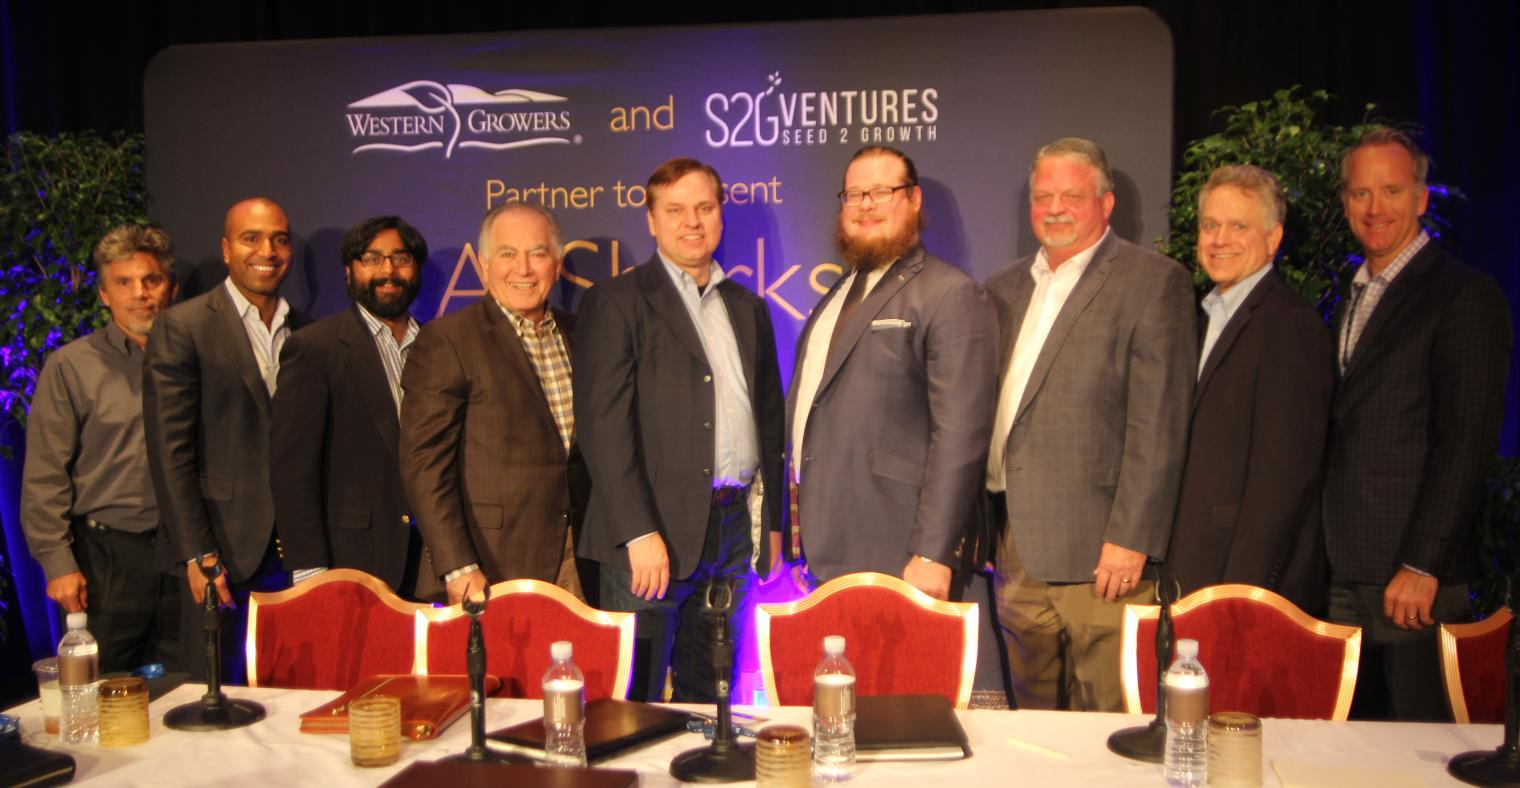 (left to right) Chuck Templeton, Managing Director at S2G Ventures; Matthew Walker, Principal at S2G Ventures; Sanjeev Krishnan, Managing Director and CIO at S2G Ventures; Tom Nassif, President & CEO at Western Growers; Bruce Rasa, CEO at AgVoice; Aidan M